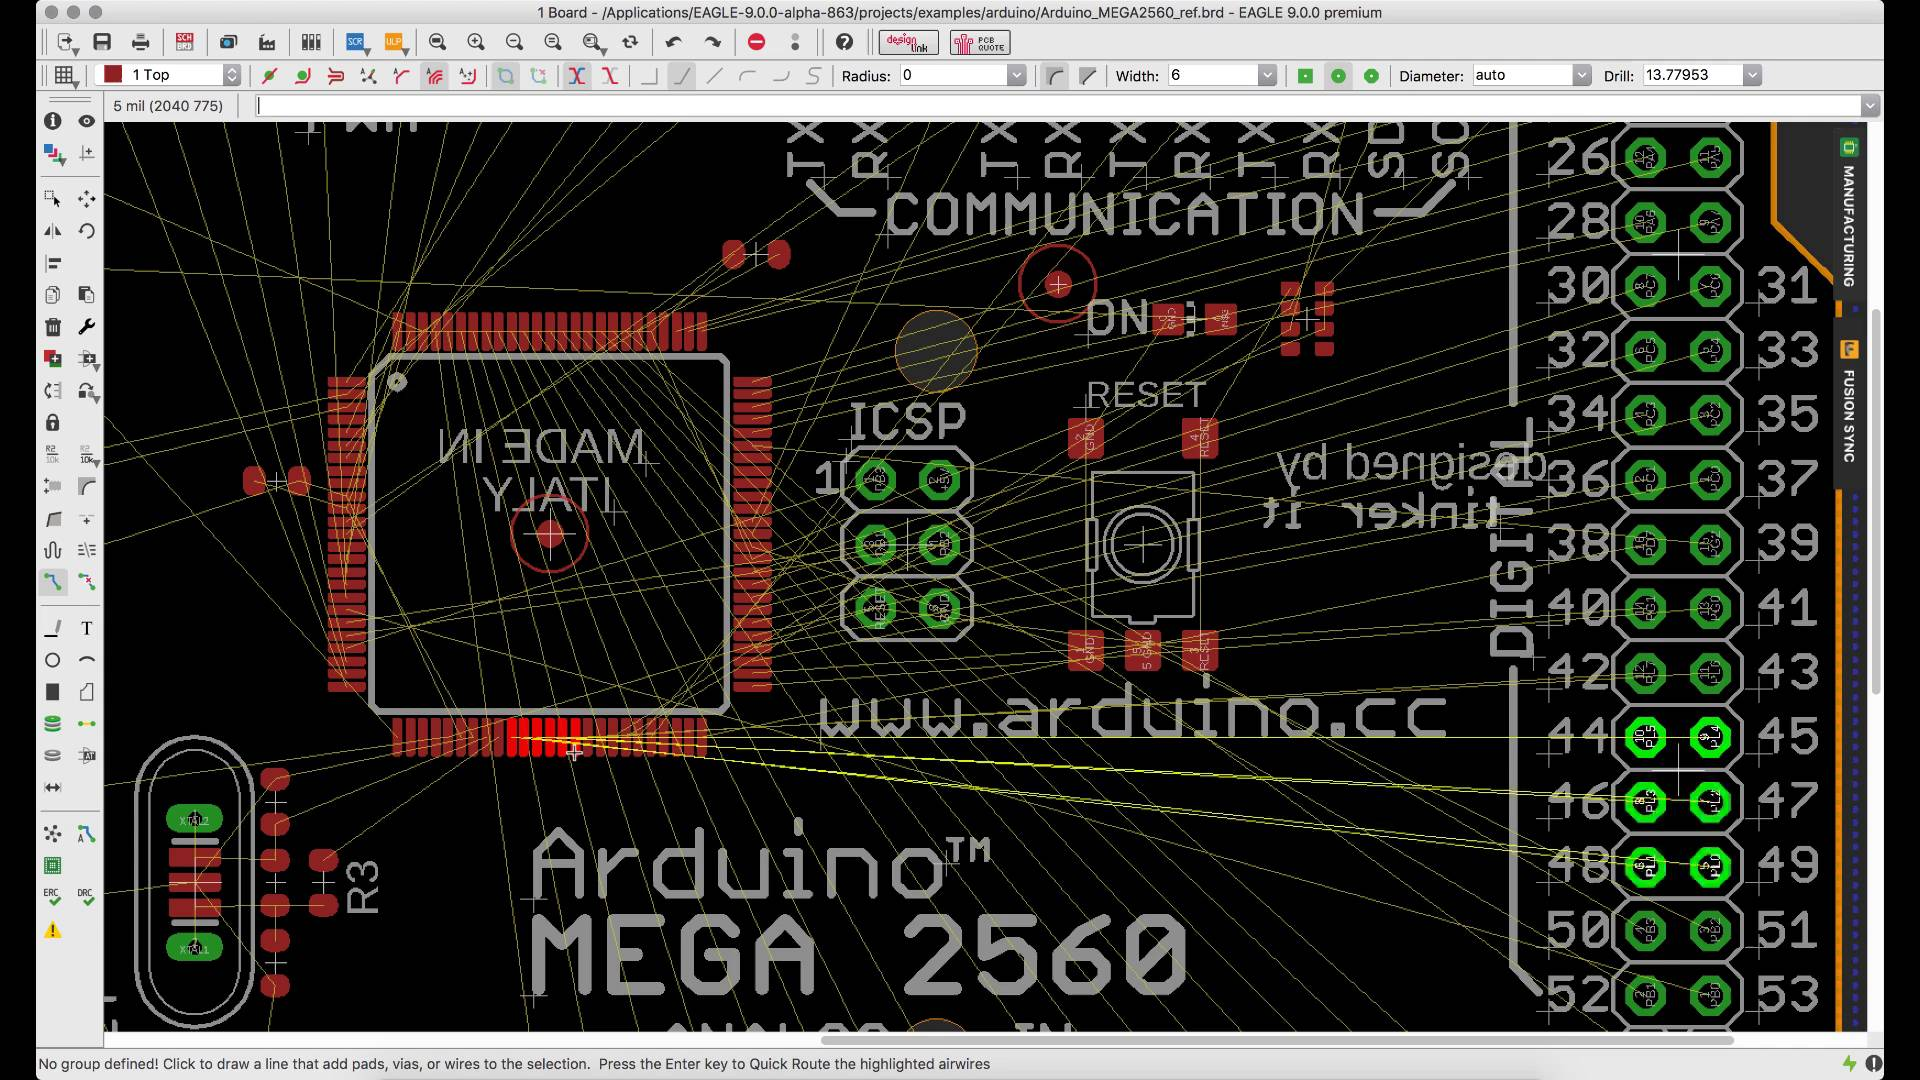 hight resolution of eagle pcb design software autodesk the circuit diagram and board are designed in eaglecad english page